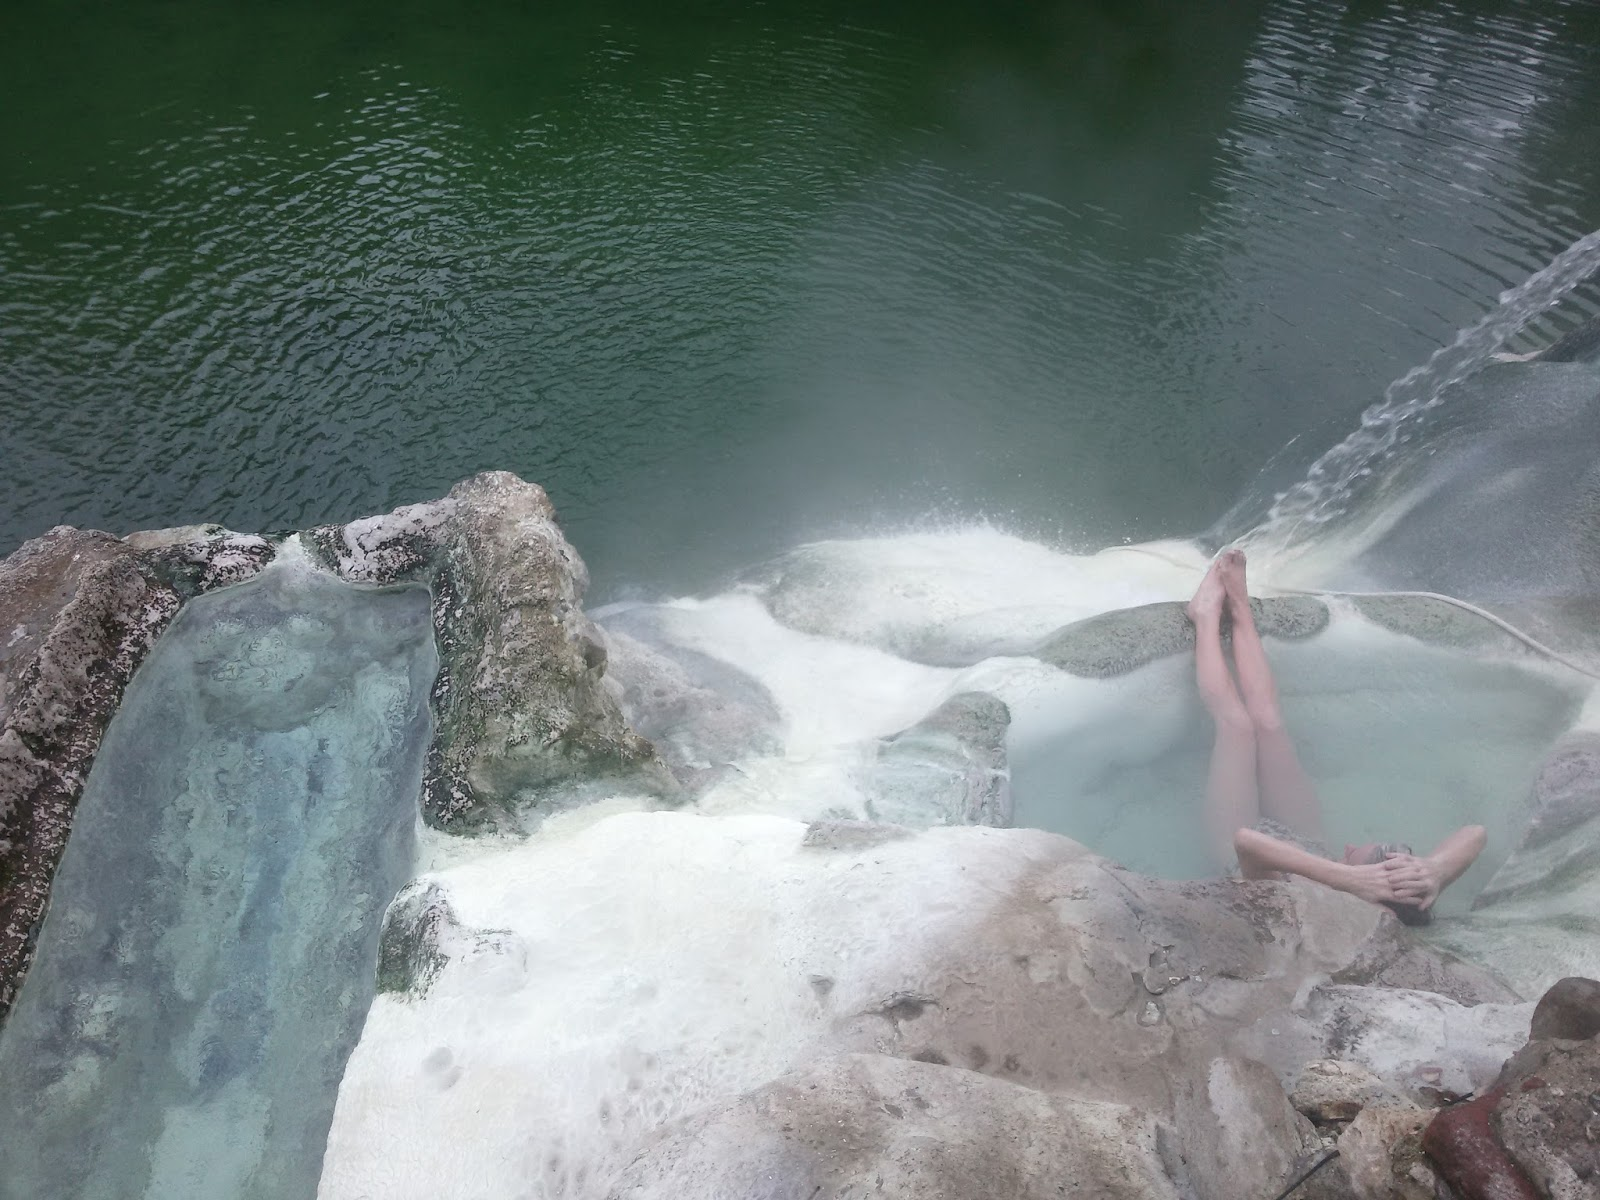 Bagno Vignoni Free Thermal Baths Tuscany Tuscany S Best Hot Springs A Map Of Sulfurous Soaking